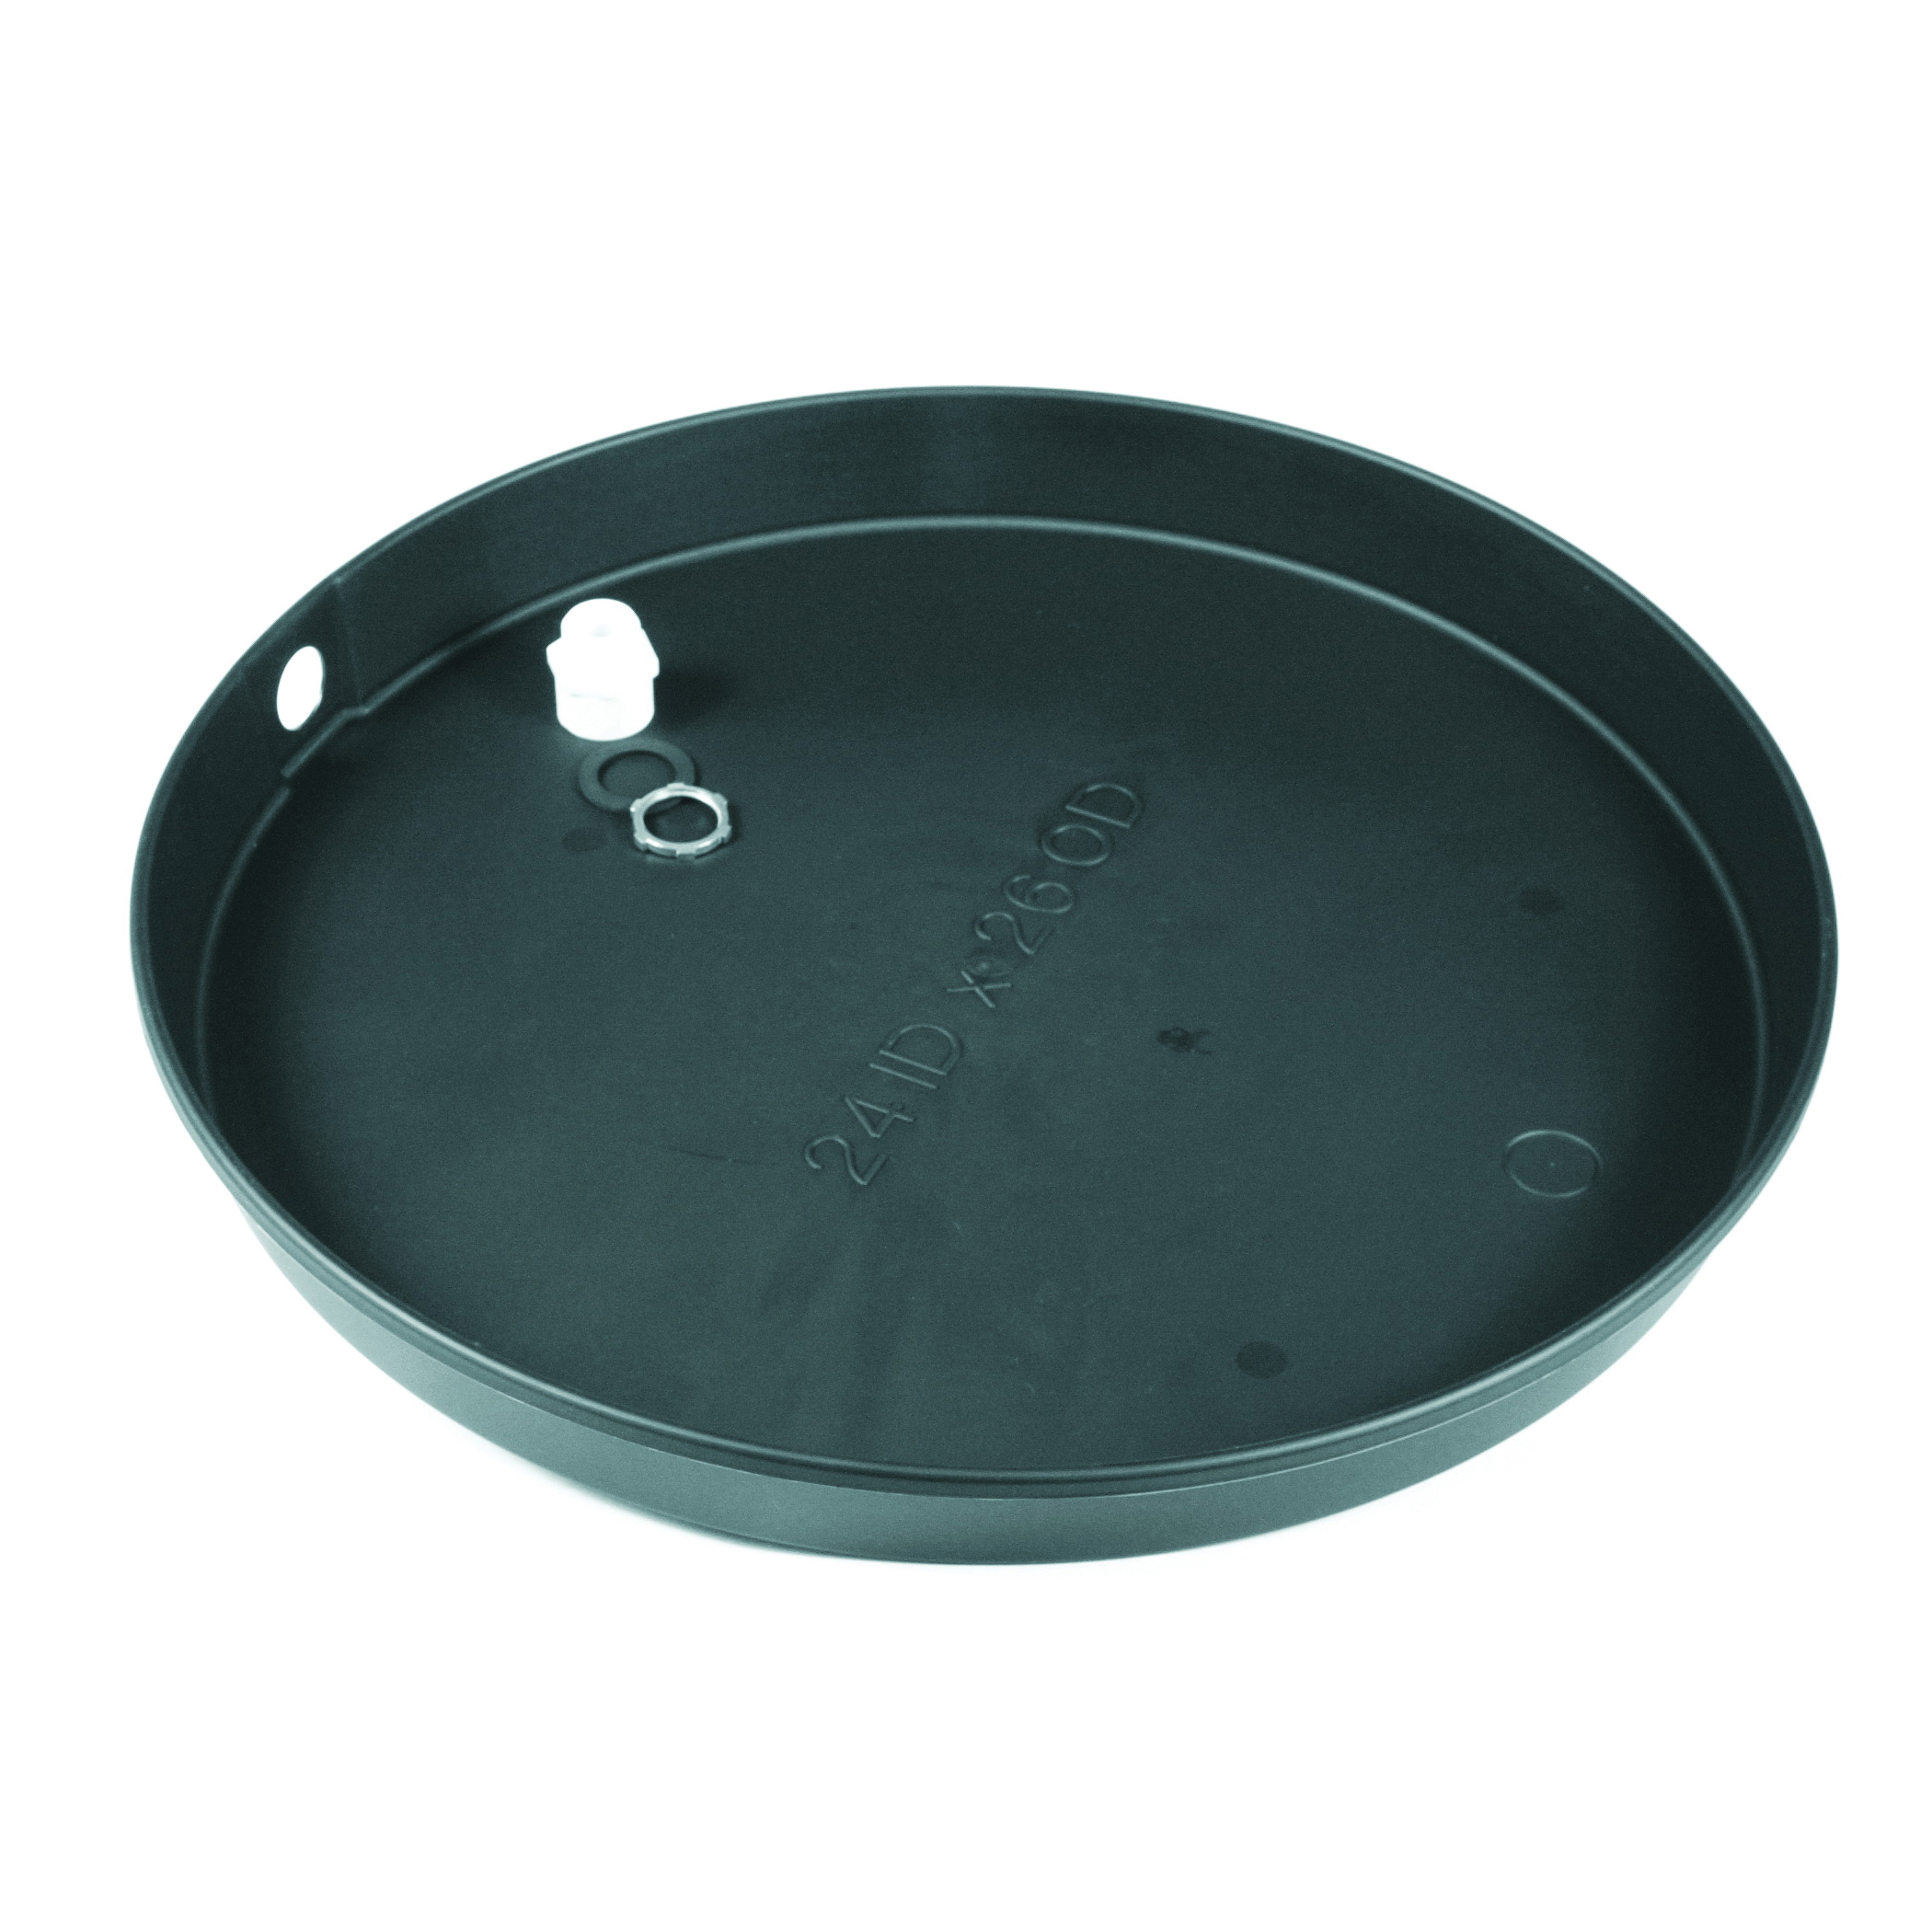 Camco 11360 Round Drain Pan, For Use With Electric Water Heater, Plastic, Domestic